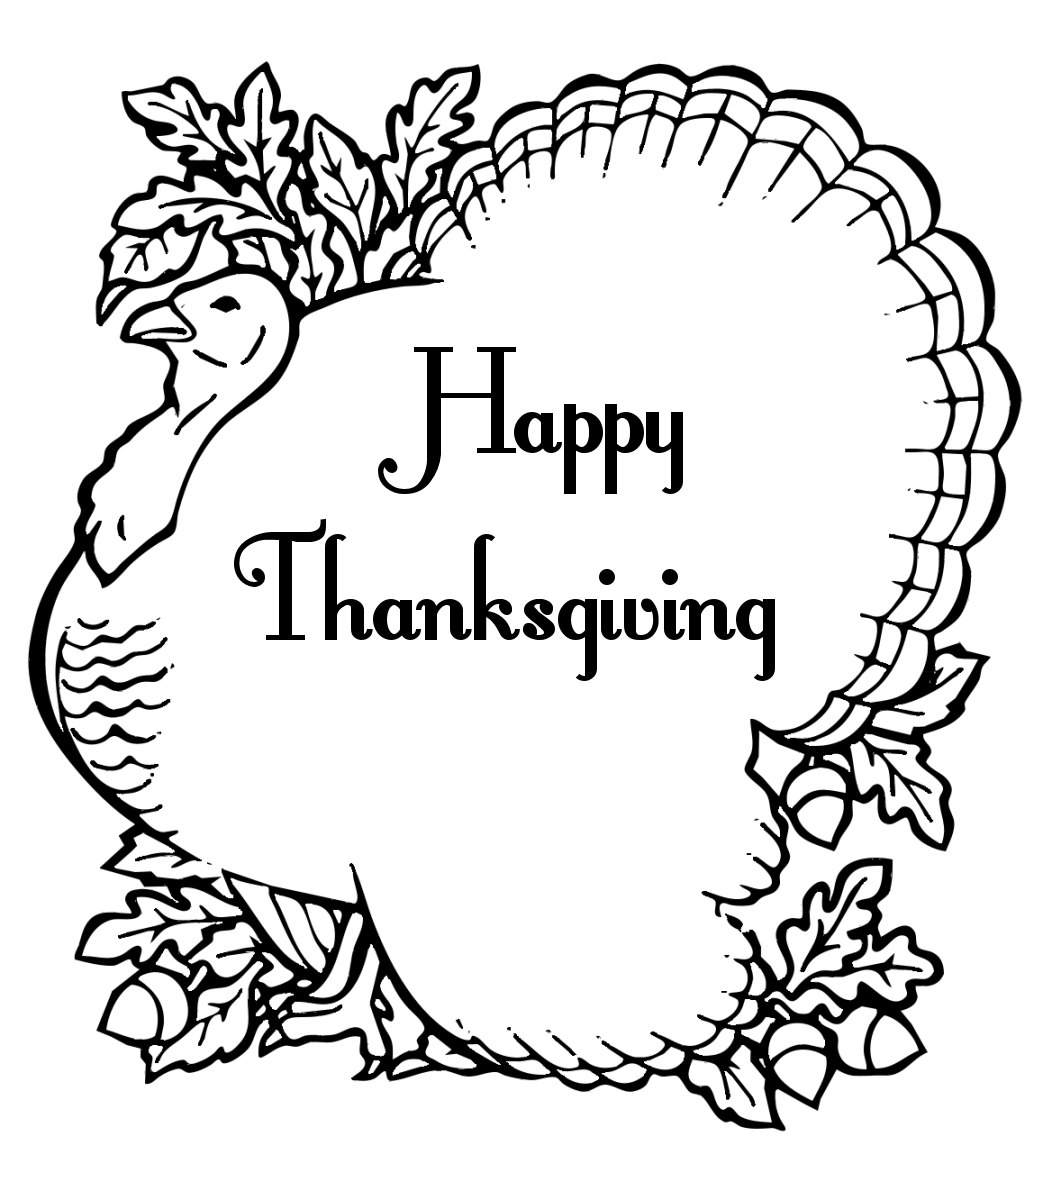 christian thanksgiving coloring pages printables - free printable thanksgiving coloring pages for kids